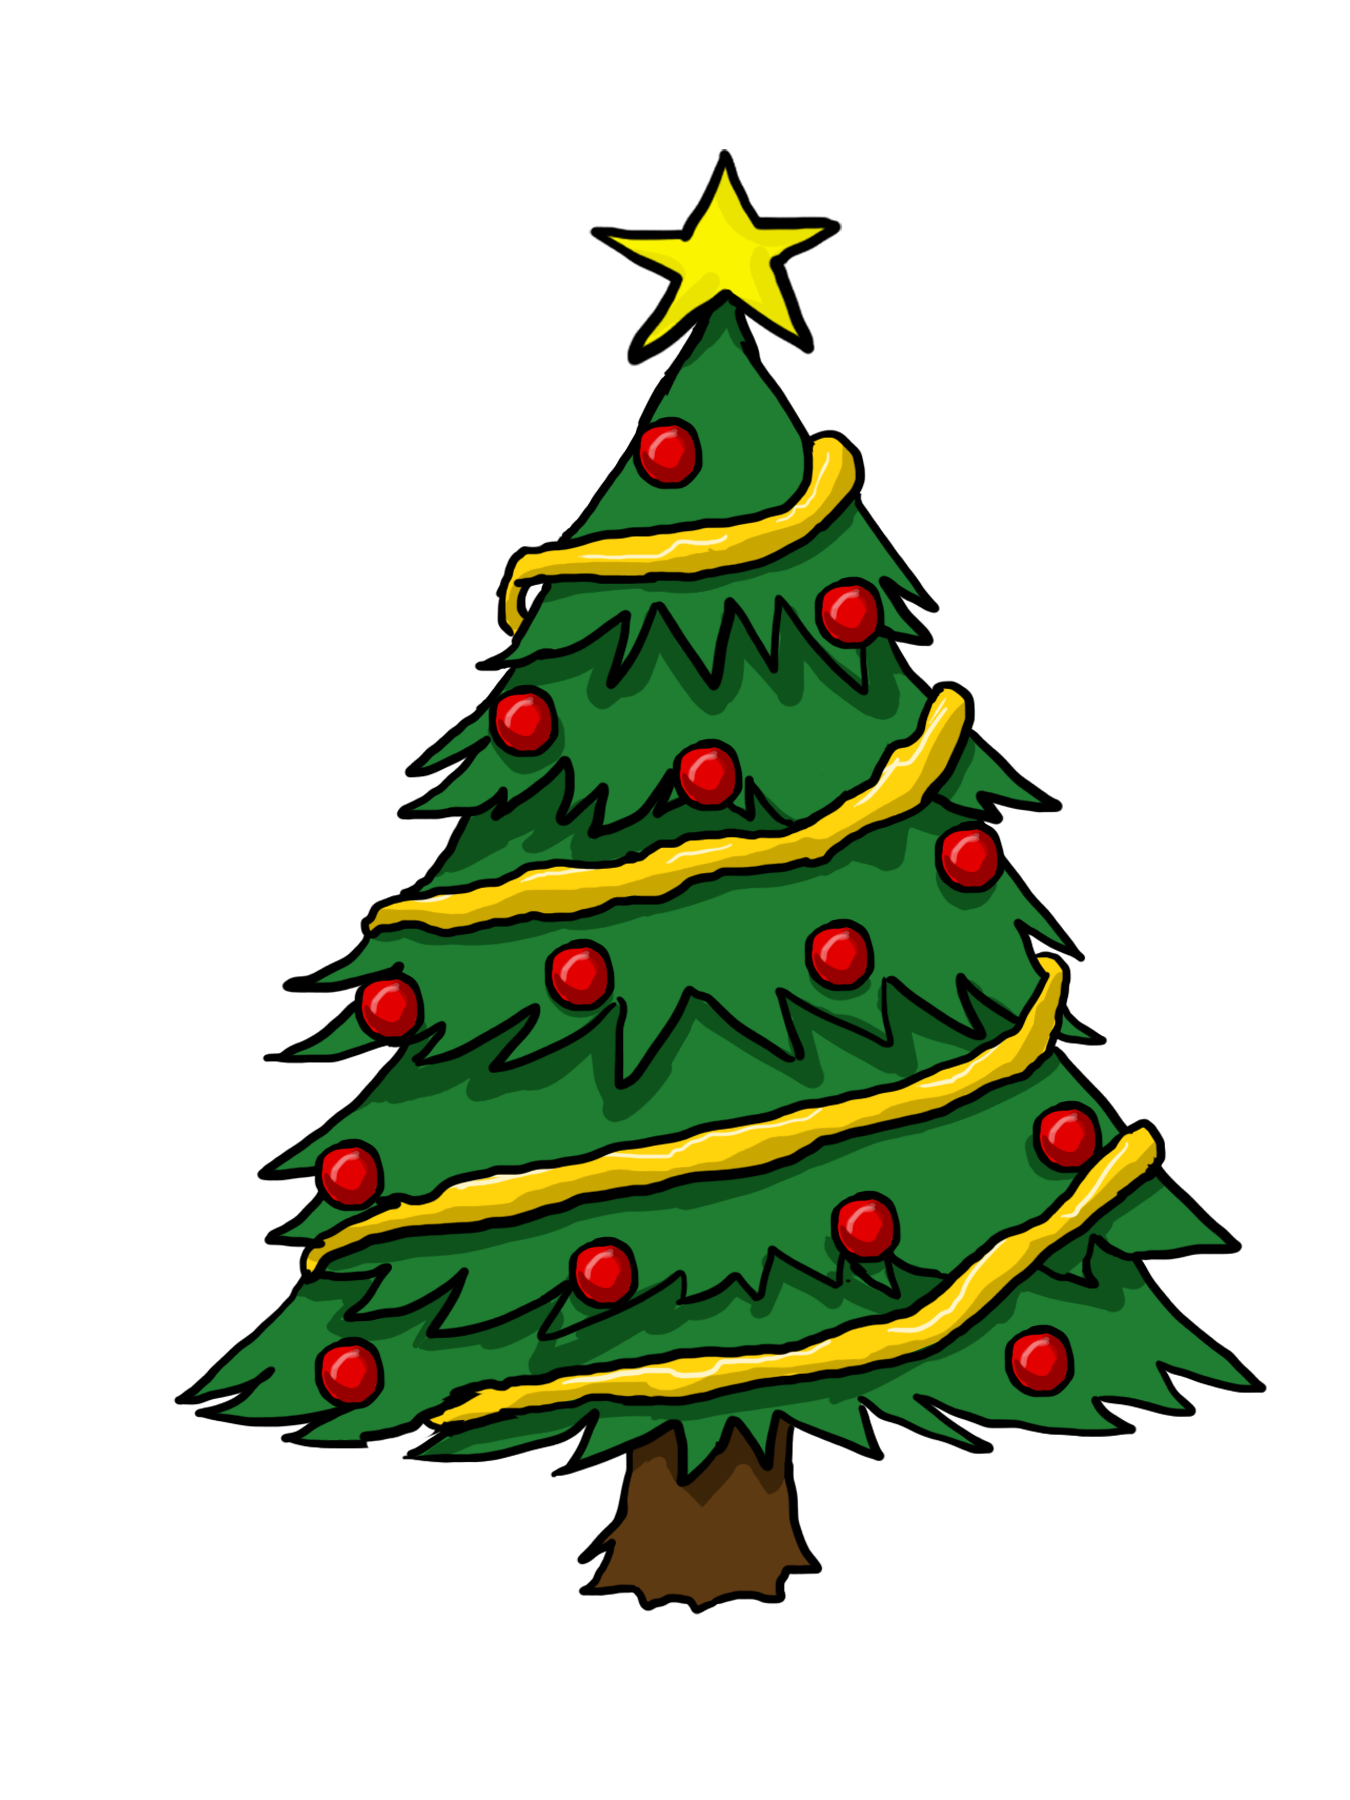 Christmas Tree clipart #9, Download drawings